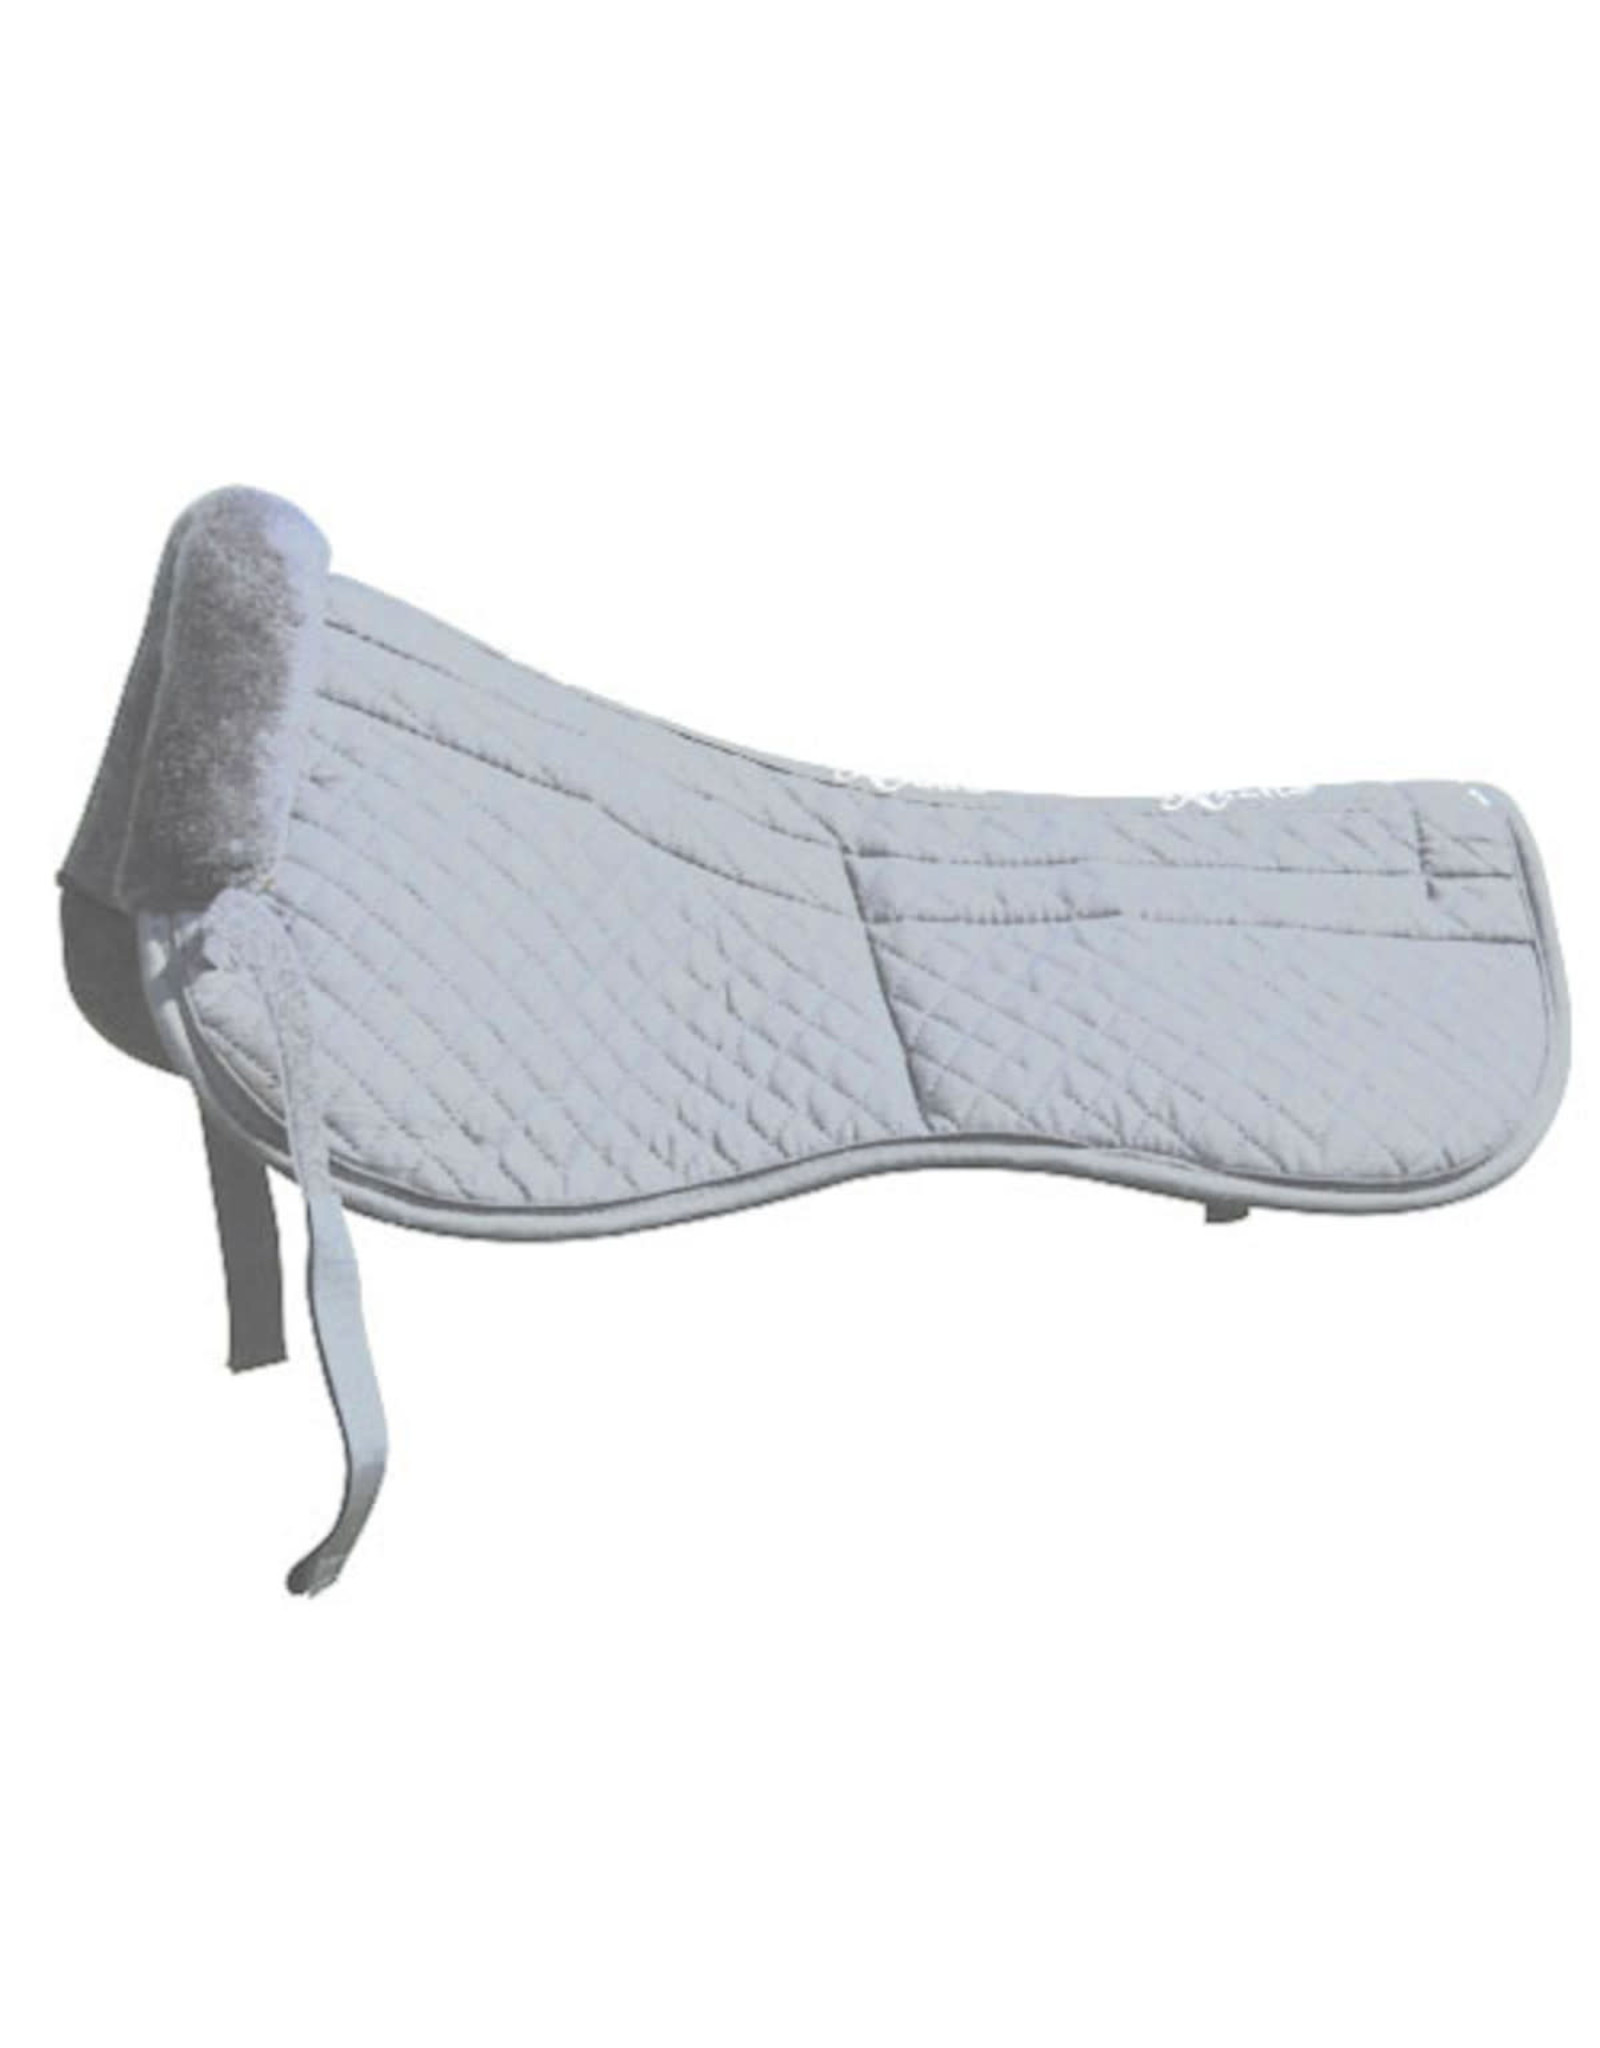 Saddle Fitting Half Pad Removable Maxtra Foam Inserts White